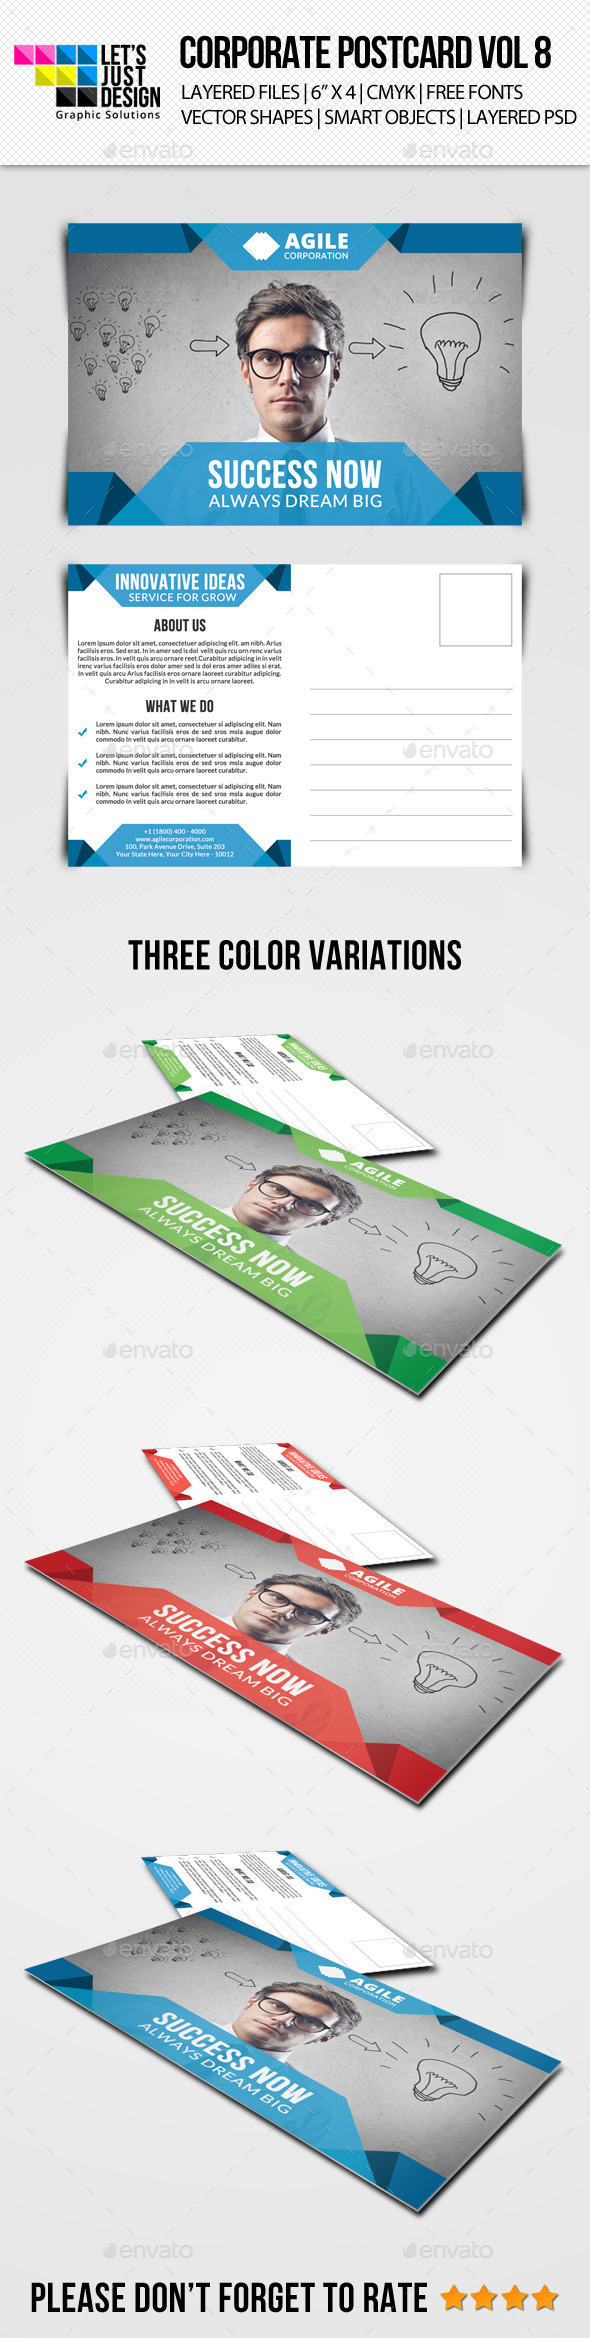 Corporate Postcard Template Vol 8 - Cards & Invites Print Templates